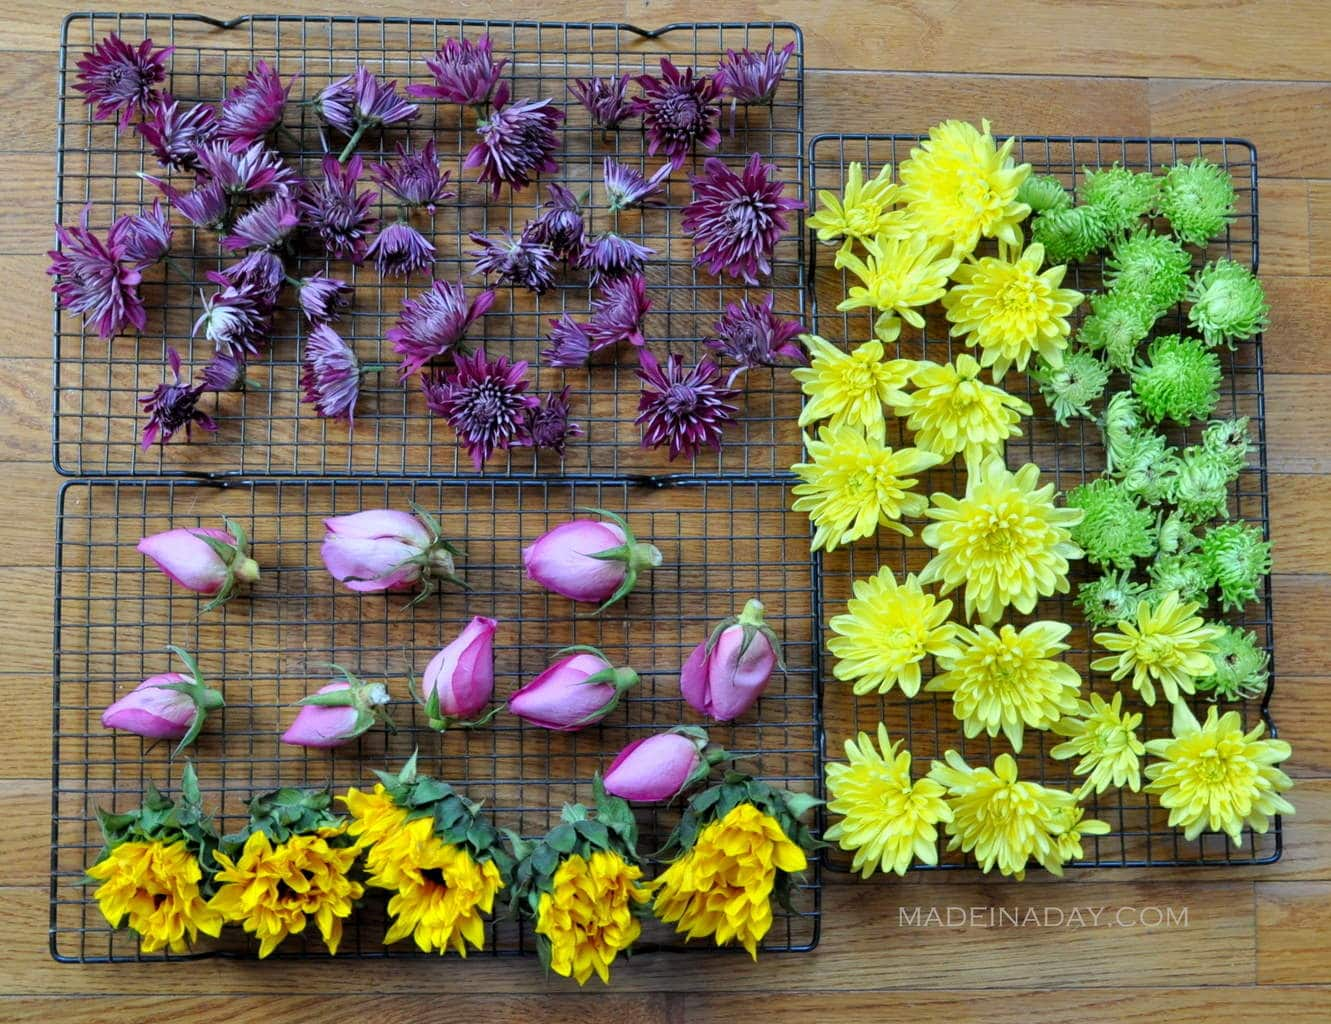 Oven Dried Flowers • Made in a Day